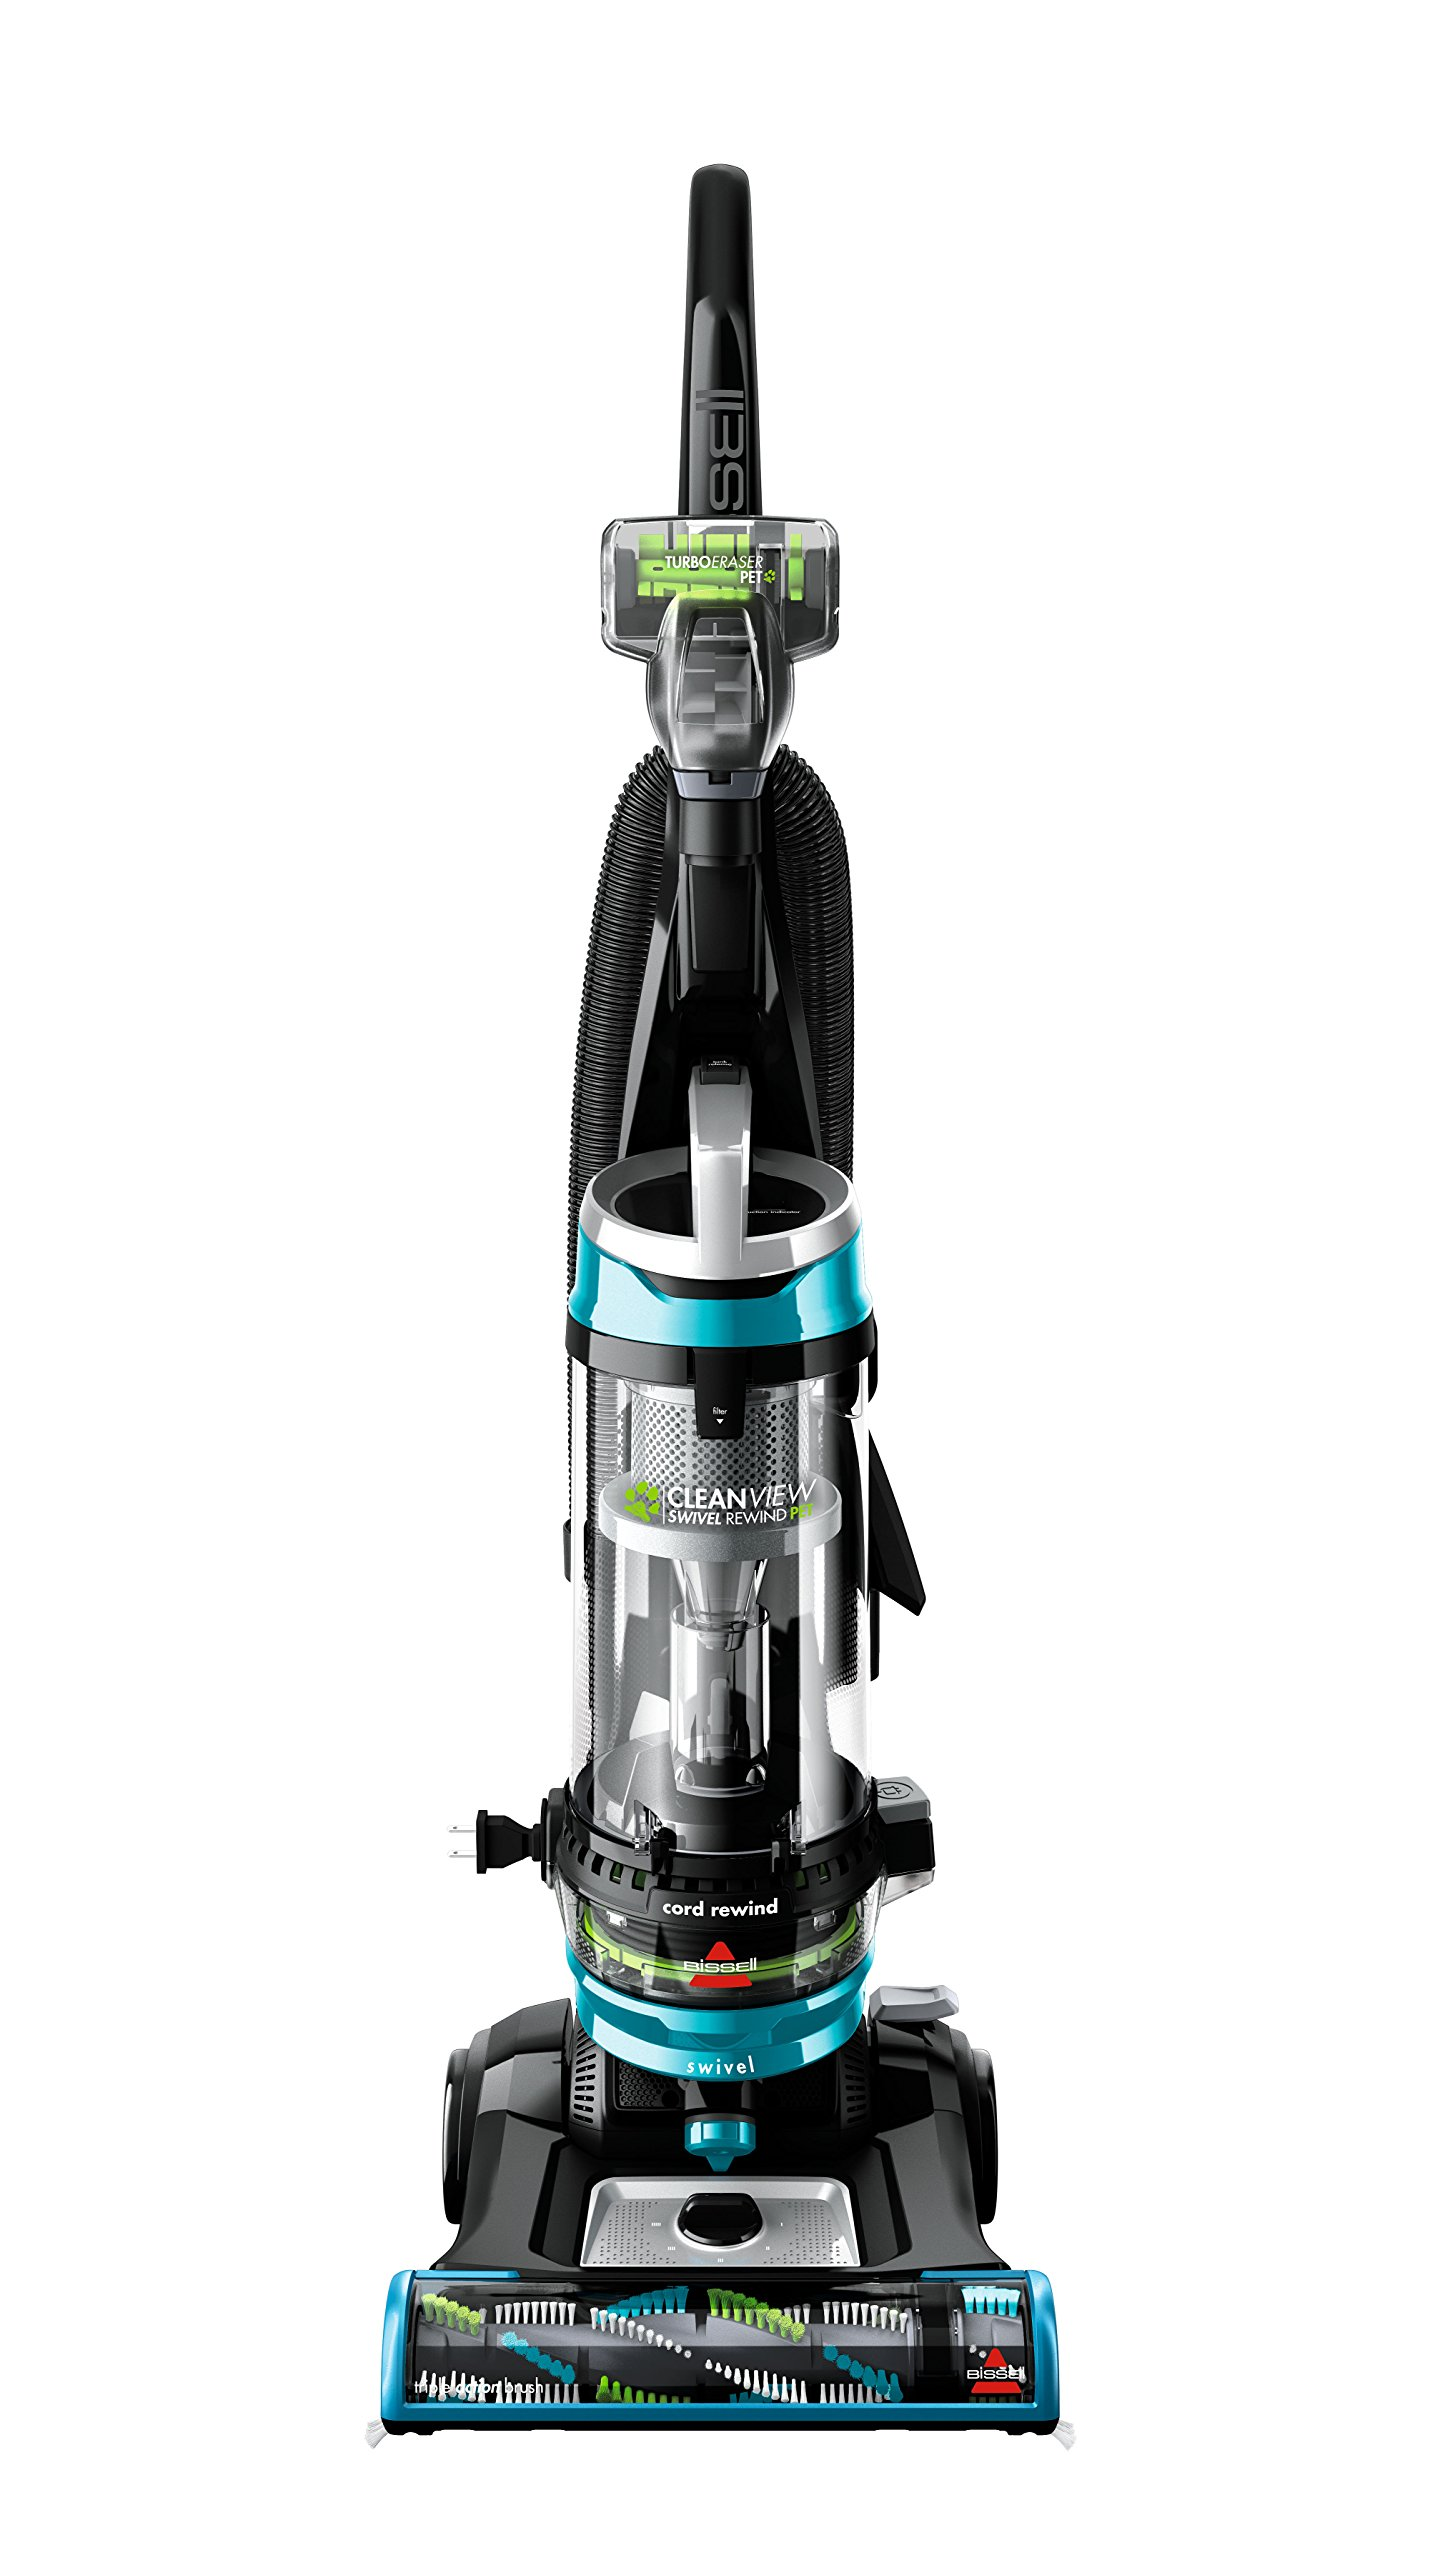 BISSELL Cleanview Swivel Rewind Pet Upright Bagless Vacuum Cleaner, Teal, 2254